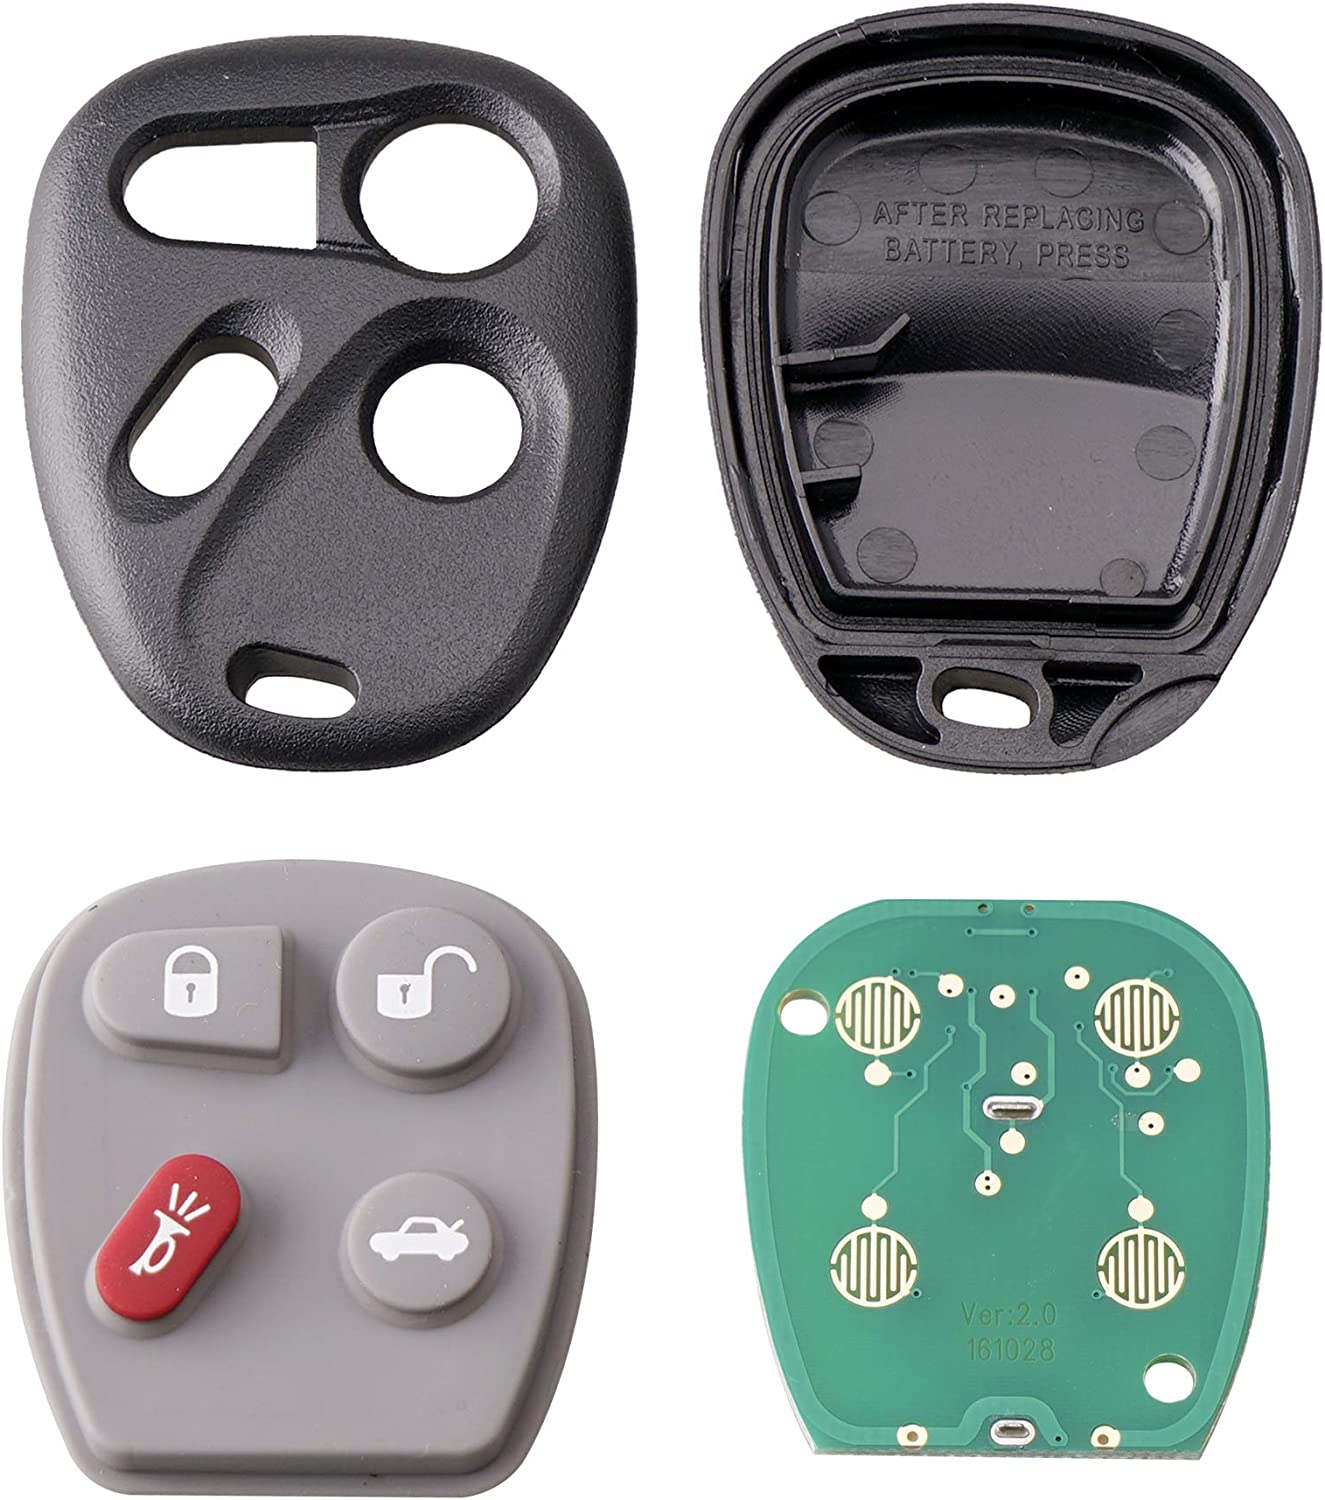 4 Buttons 315Mhz KOBLEAR1XT Keyless Entry Car Fob Remote Key For Chevrolet Corvette C5 2001 2002 2003 2004